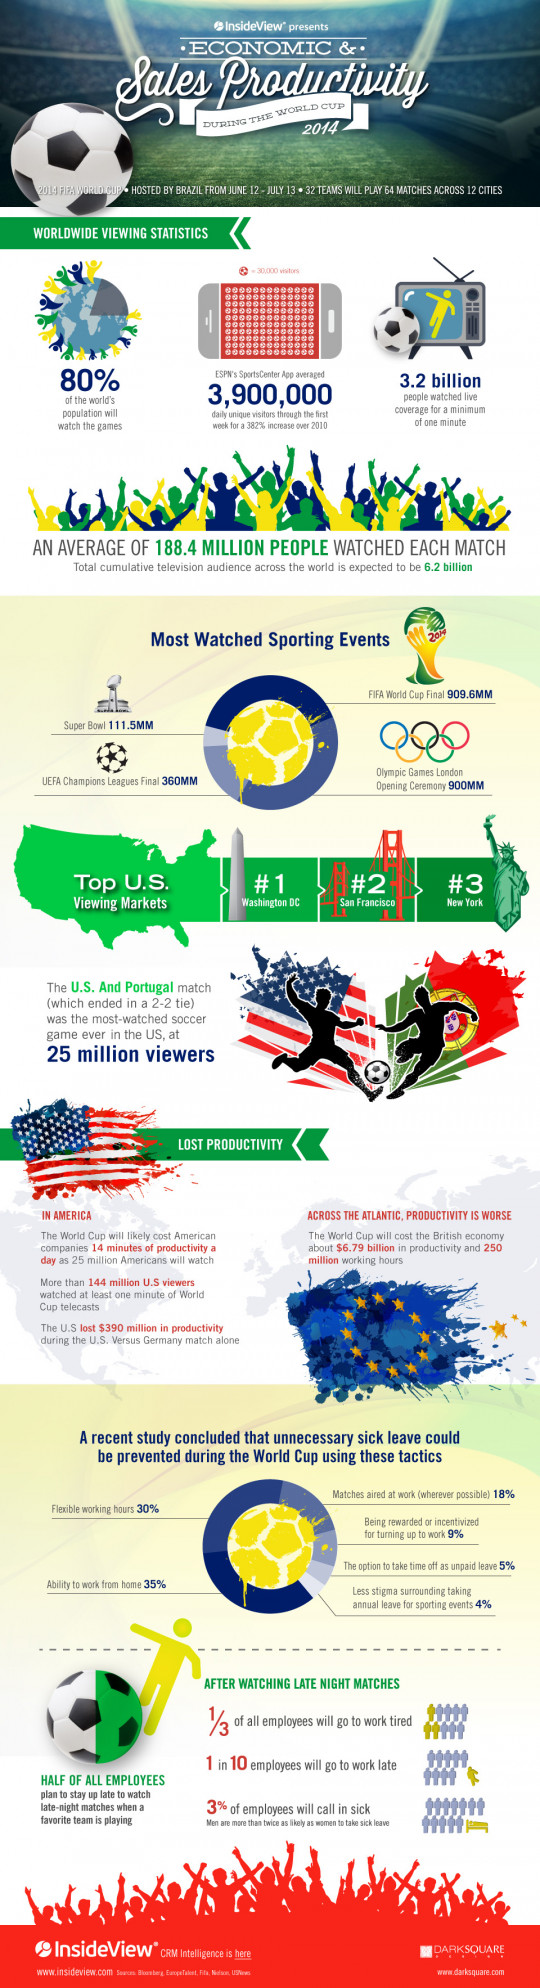 Productivity During the 2014 World Cup